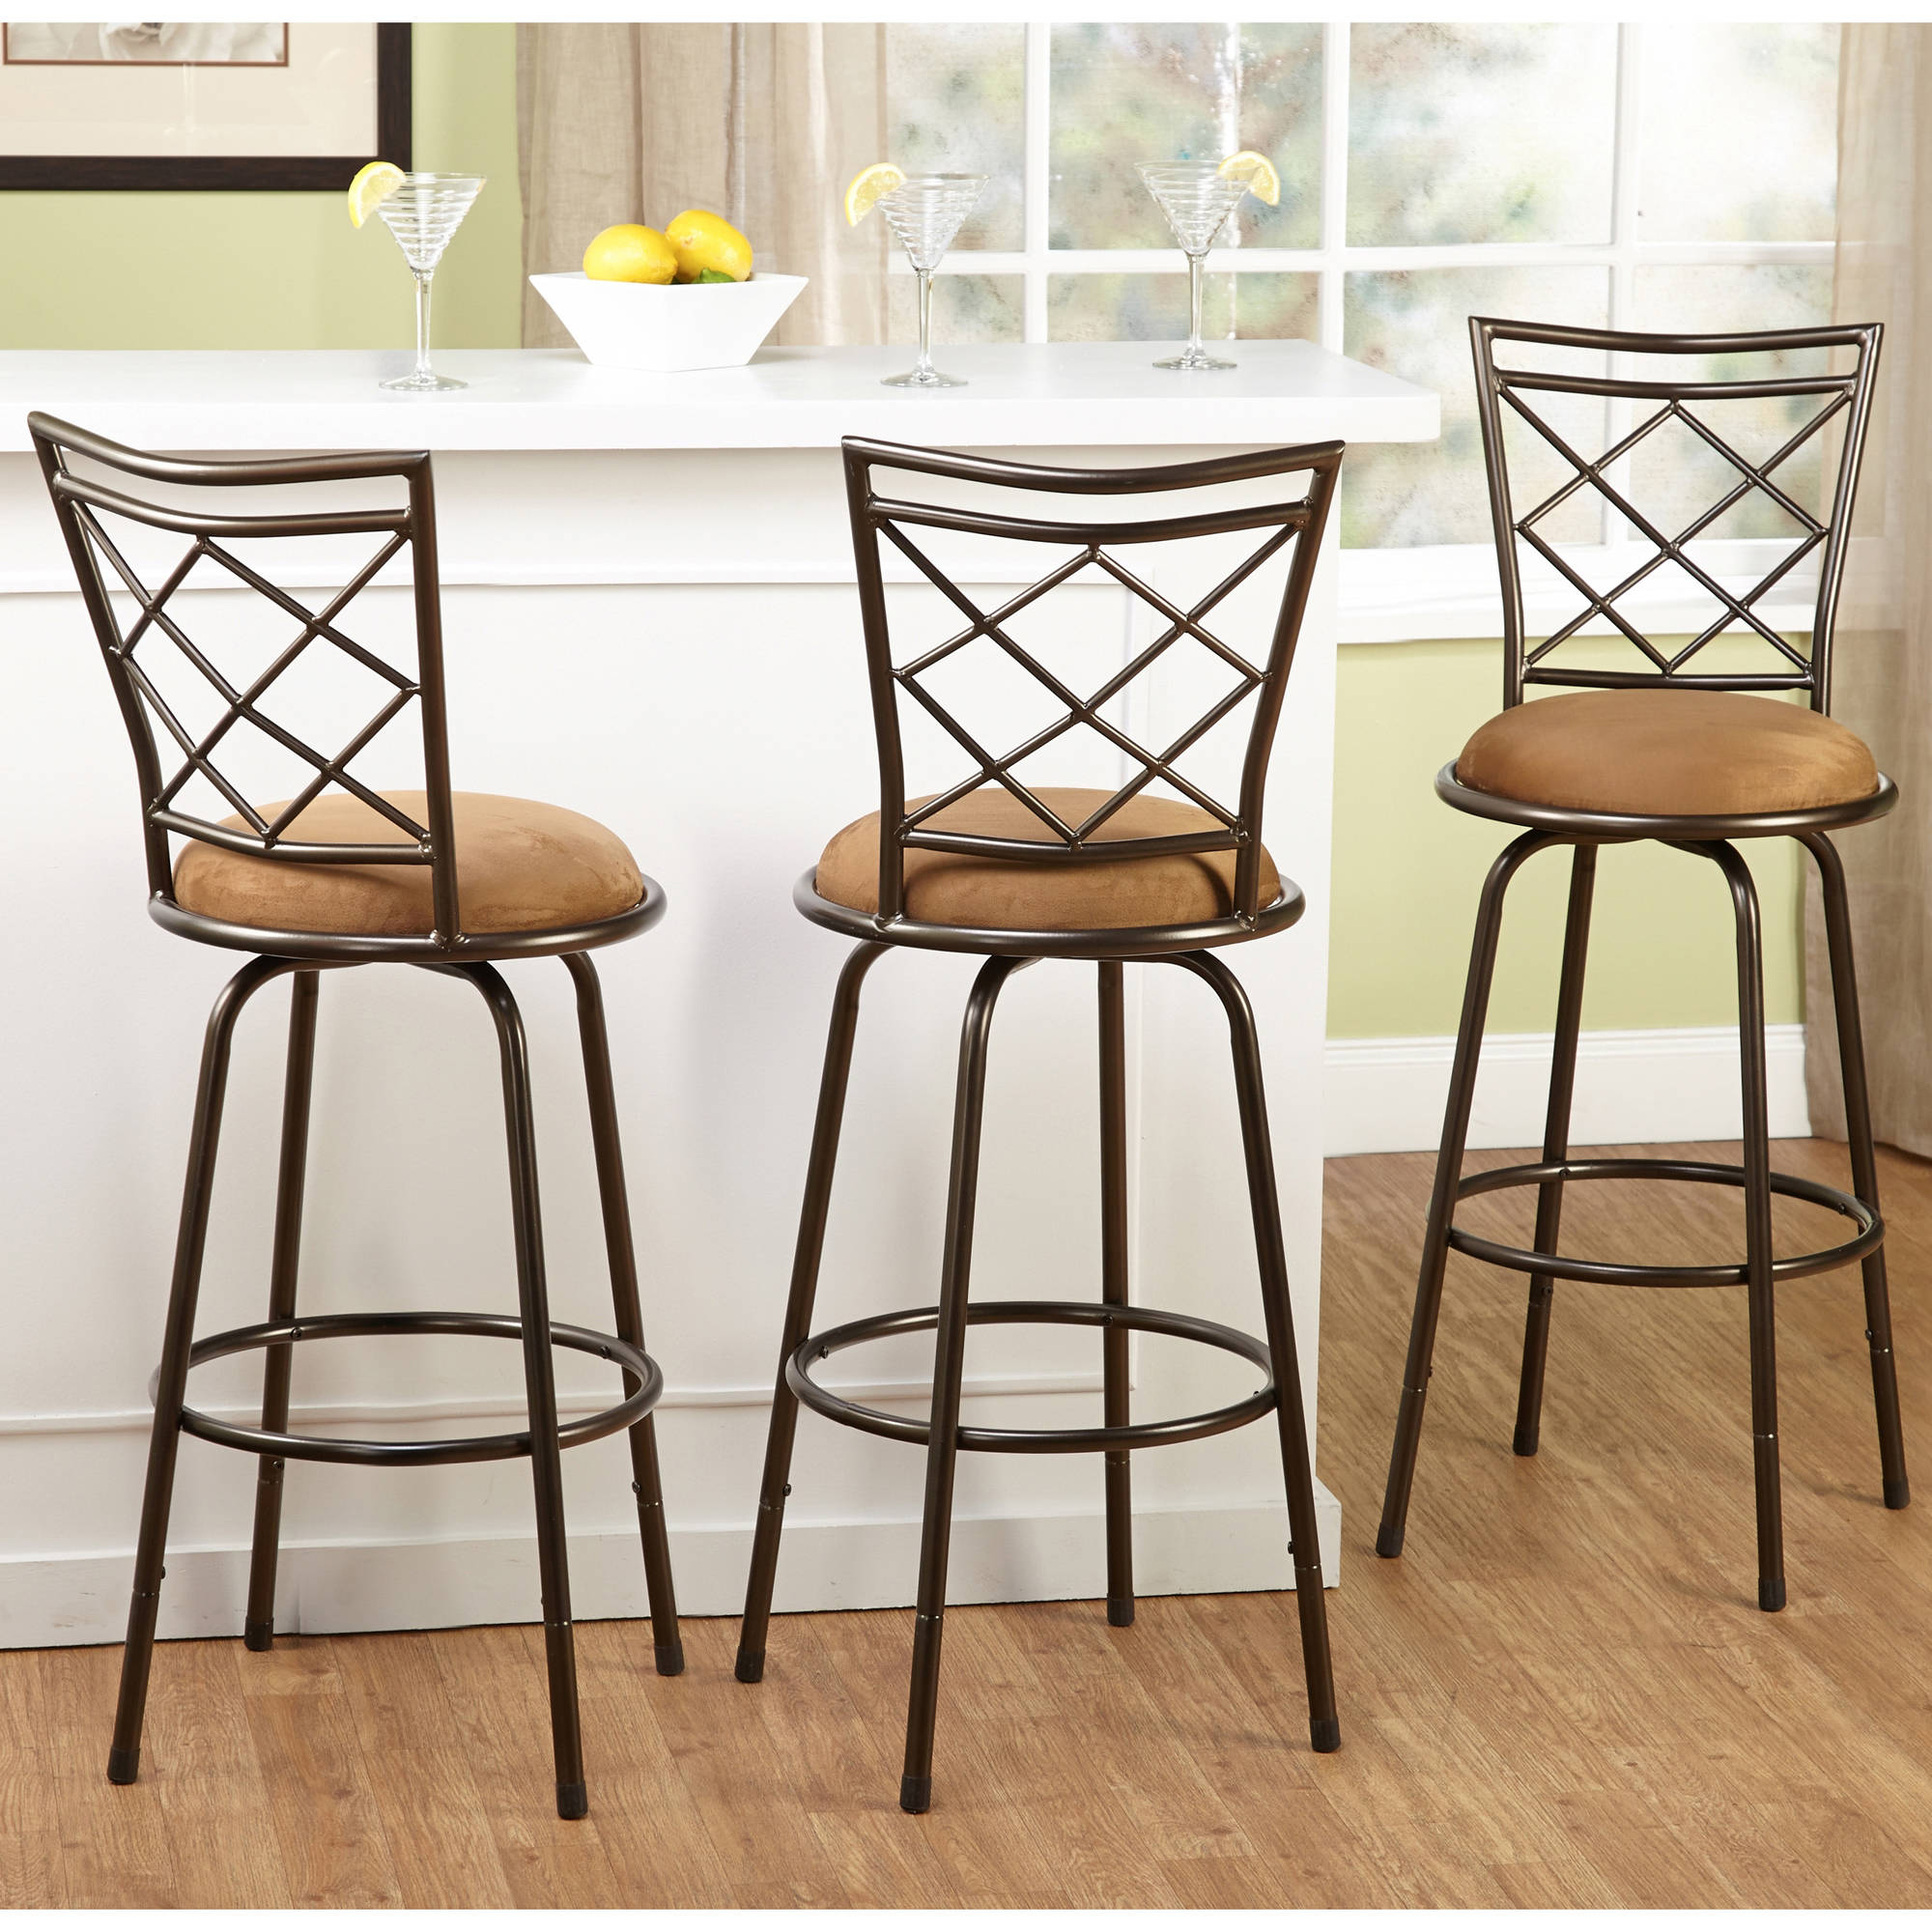 Preferred Tms Avery Adjustable Height Bar Stool, Multiple Colors, Set Of 3 Inside Sheetz 3 Piece Counter Height Dining Sets (View 17 of 25)